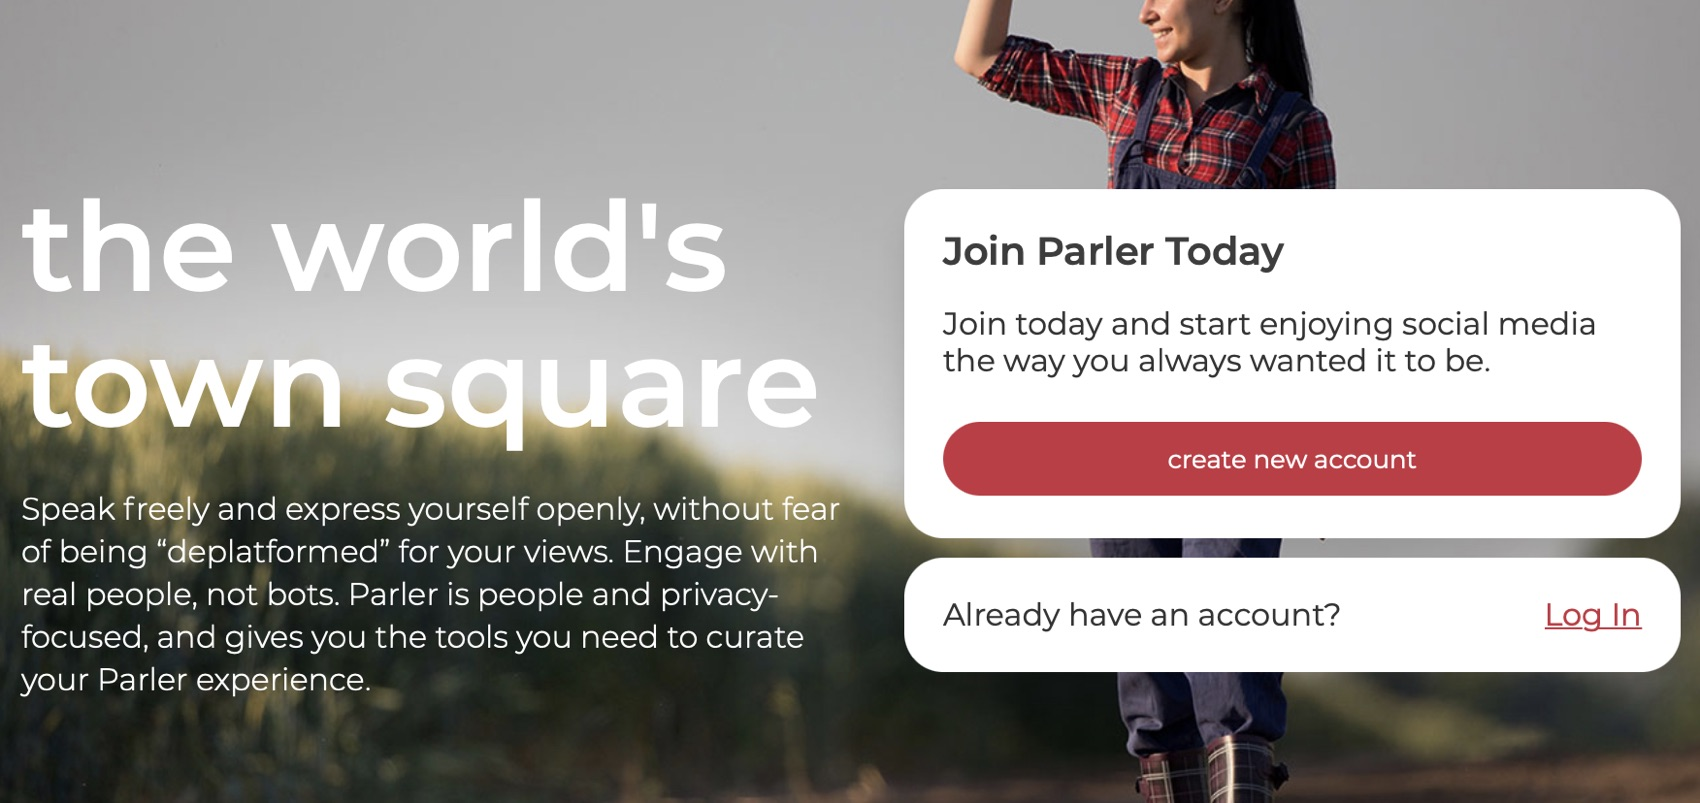 Apple Threatens to Ban Parler From App Store as Twitter Bans Donald Trump